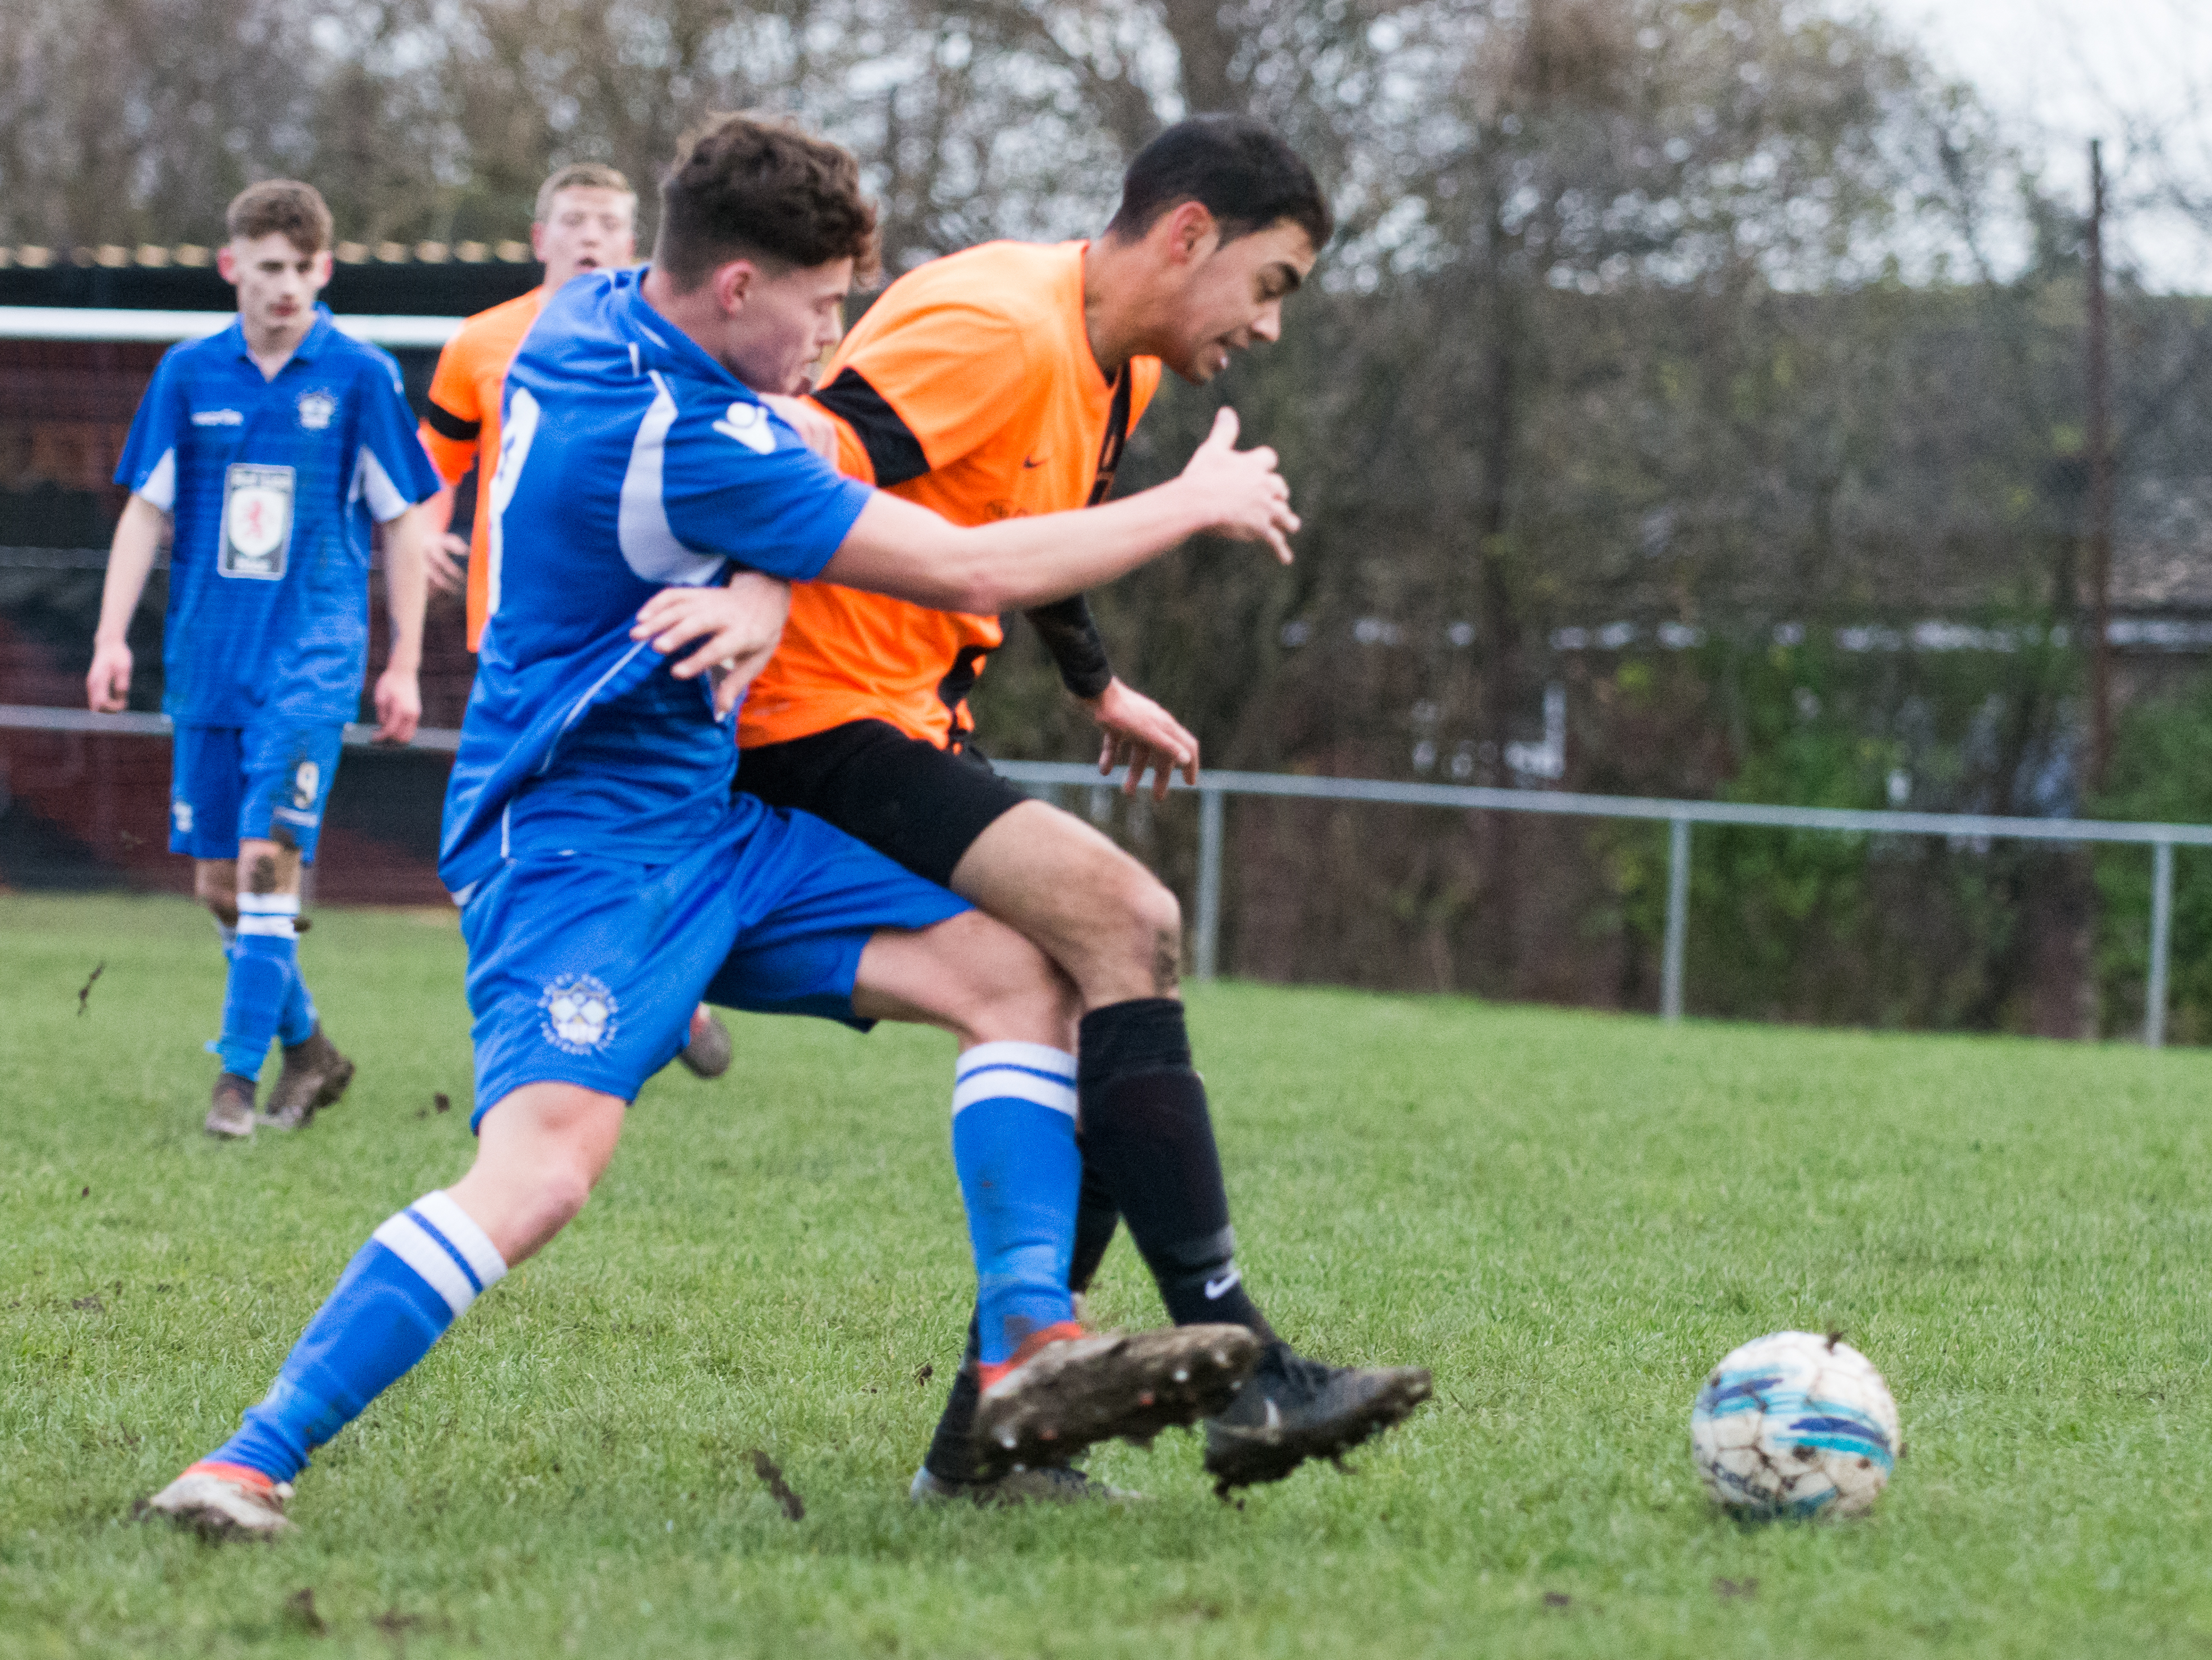 Mile Oak Res vs Sidley United 09.12.17 30